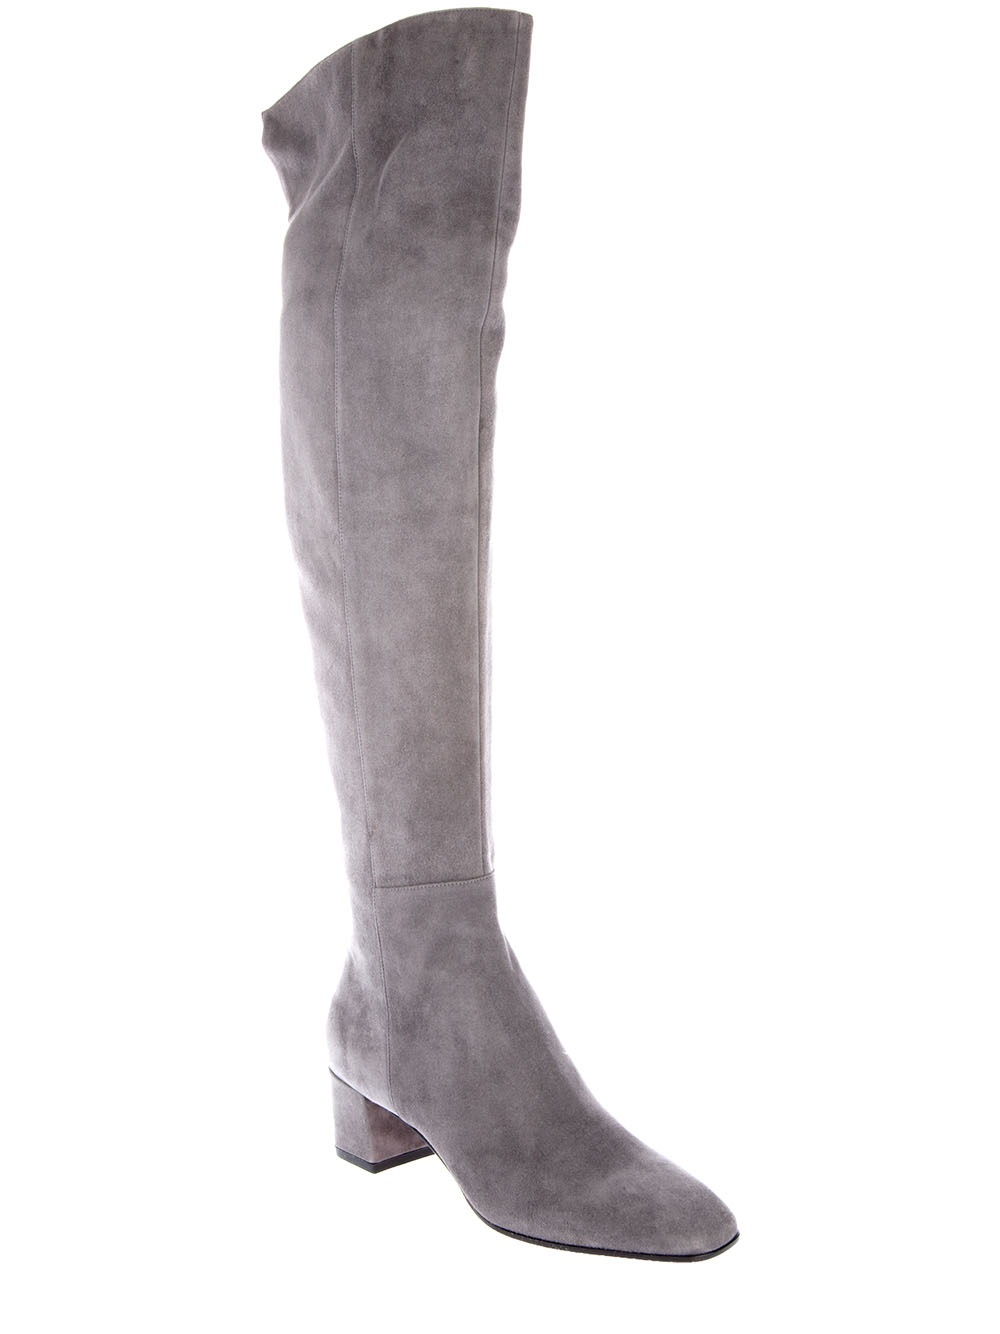 Channel super sexy vibes in these grey thigh high gladiator style boots with lace up feature.